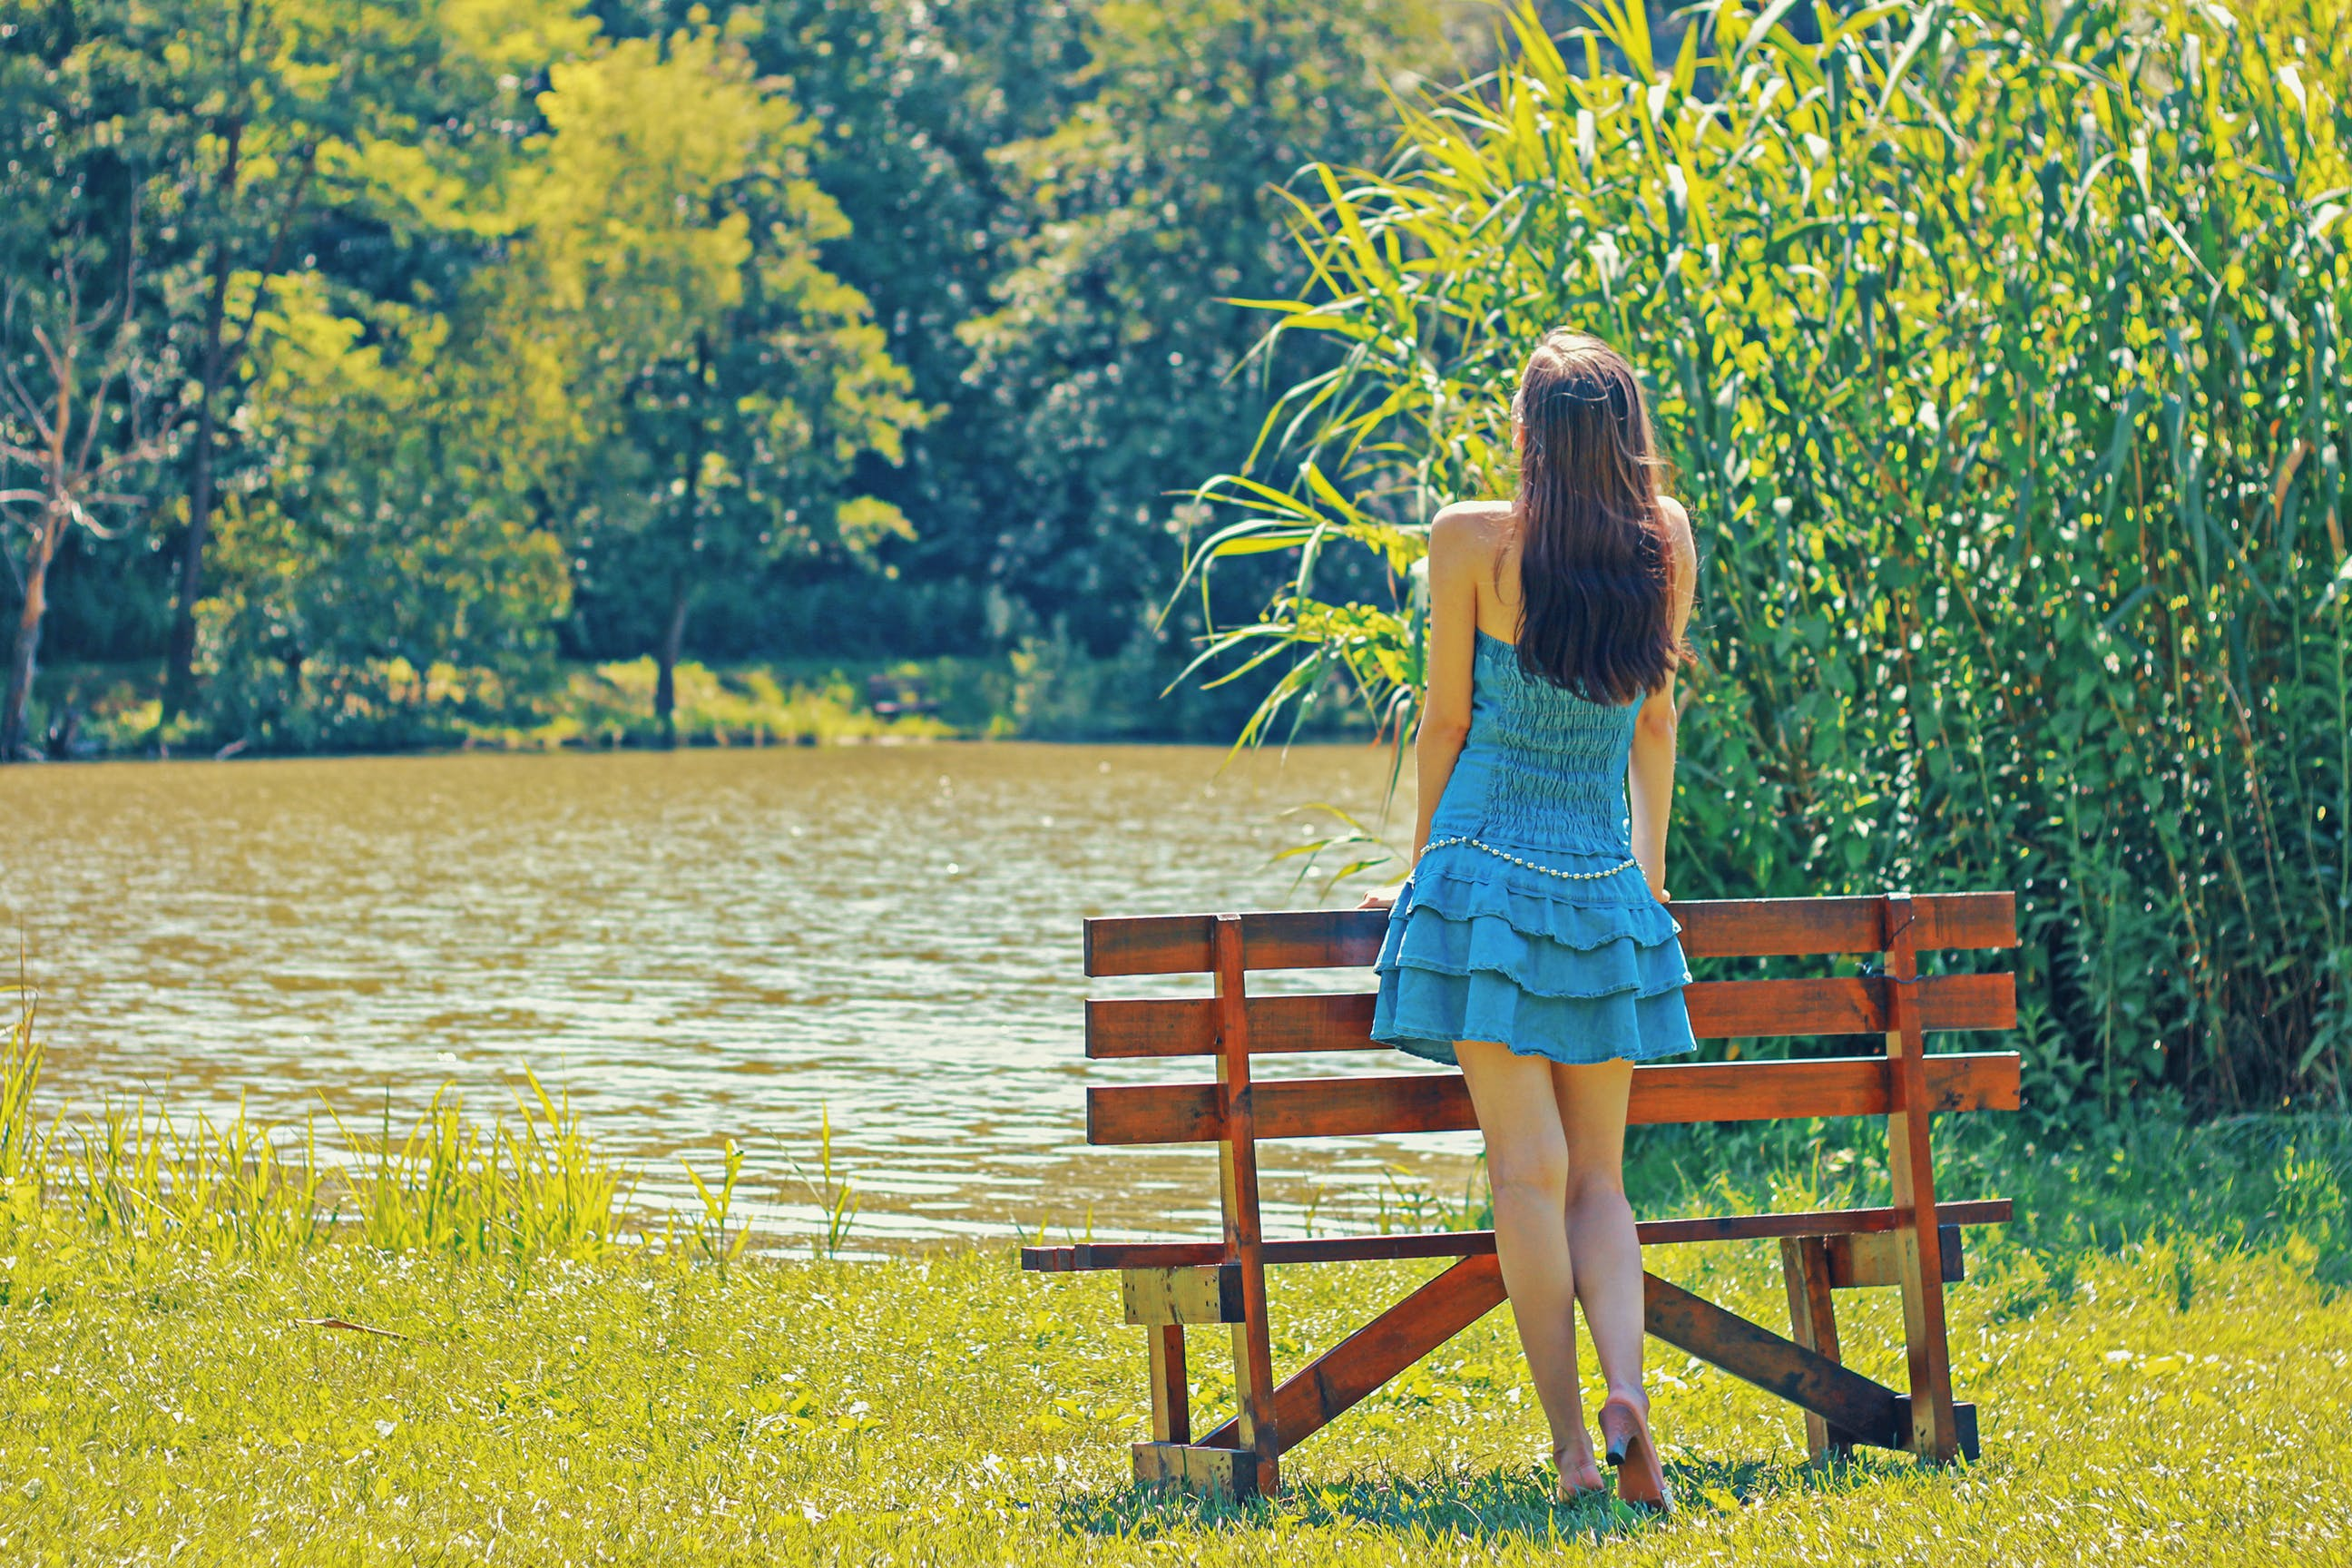 Full Length Rear View of a Woman Overlooking Calm Lake